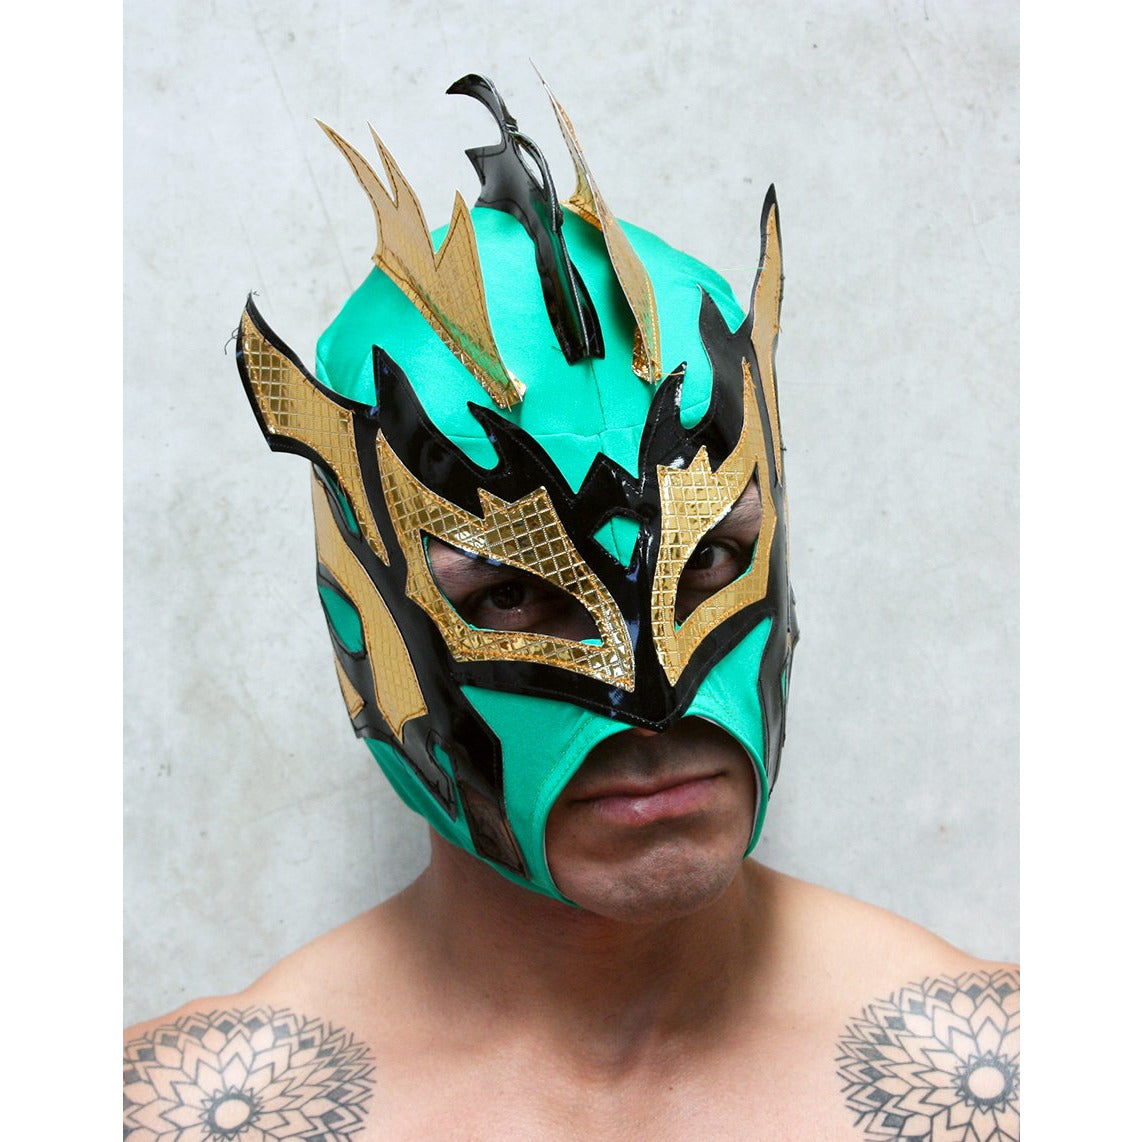 Kalisto 2 Mask - Mexican Wrestling Masks - Lucha Libre Mask